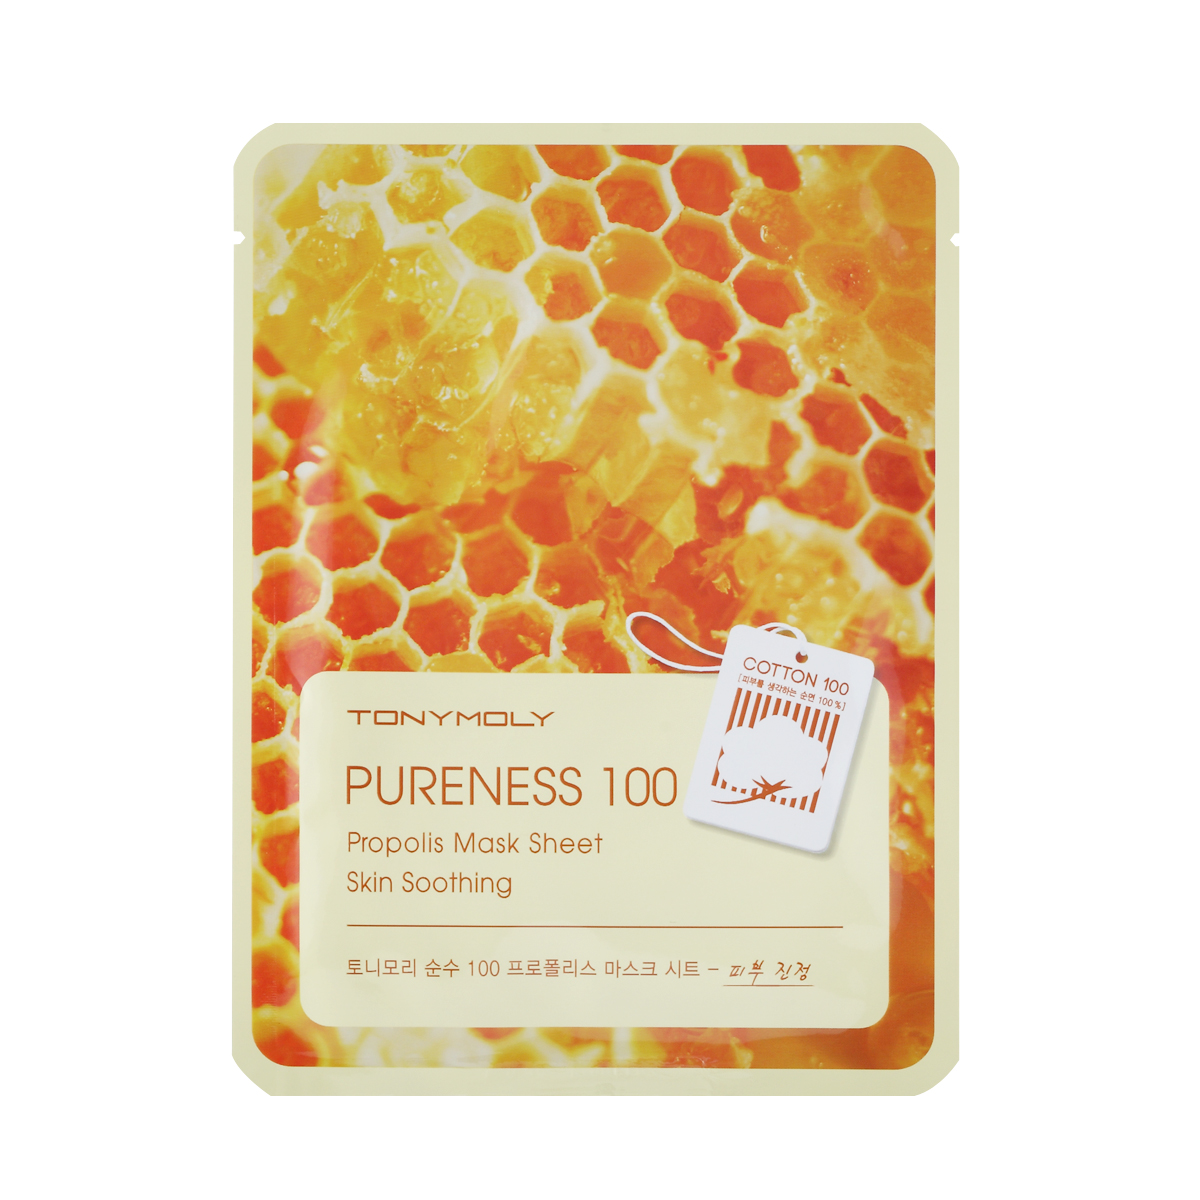 TonyMoly Тканевая маска с экстрактом прополиса Pureness 100 Propolis Mask Sheet-Skin Calming, 21 мл tony moly маска для лица pureness 100 green tea mask sheet